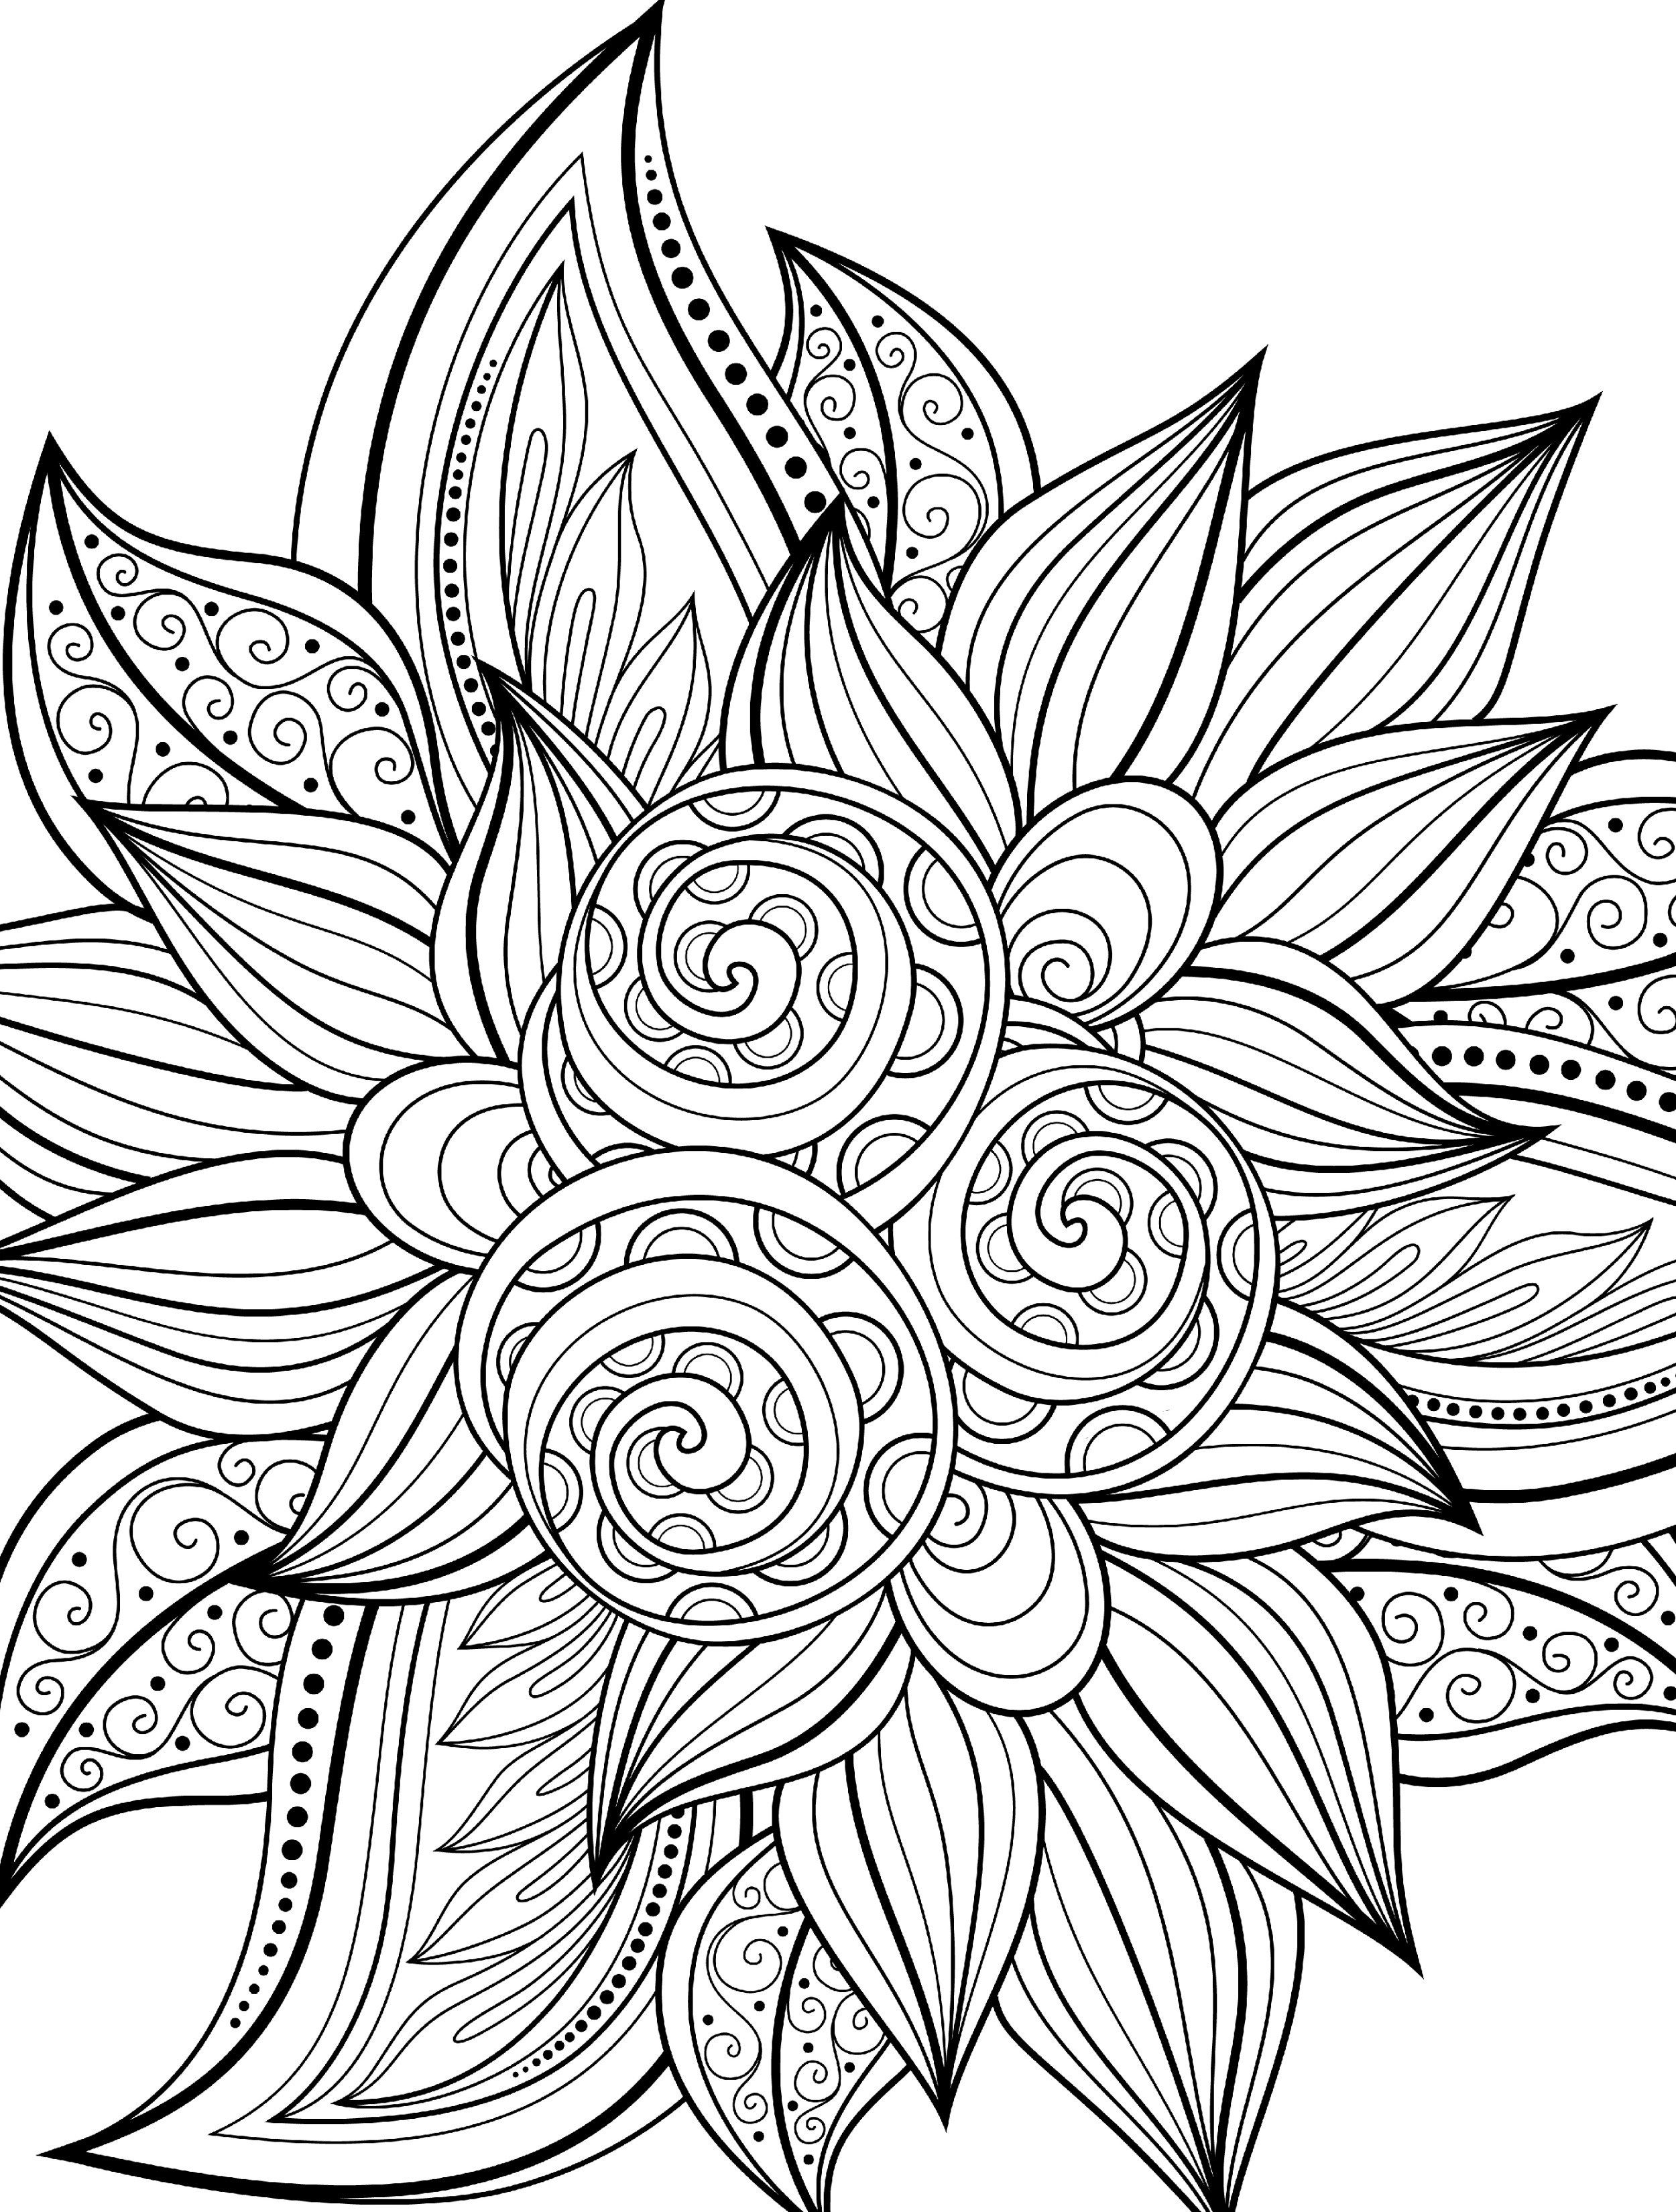 cool printable coloring pages # 2